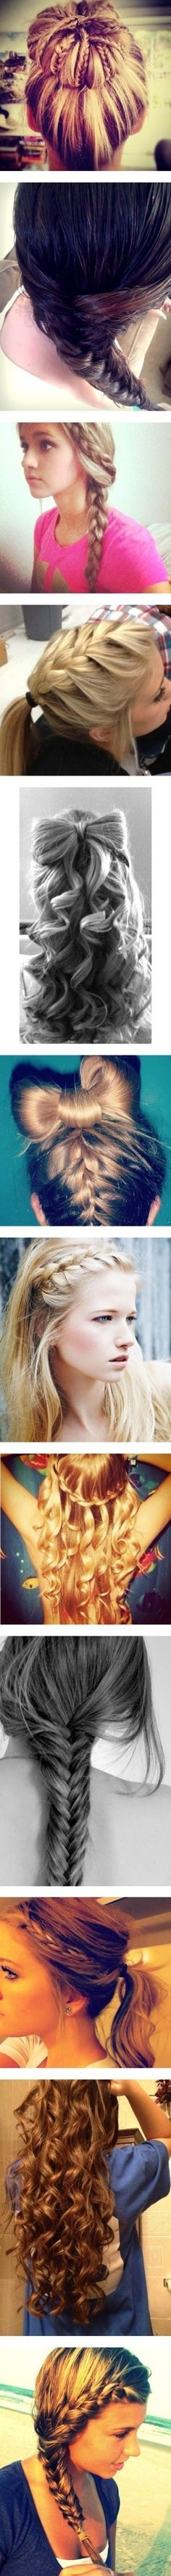 "Different Ways To Braid Your Hair ""Part 4"" 